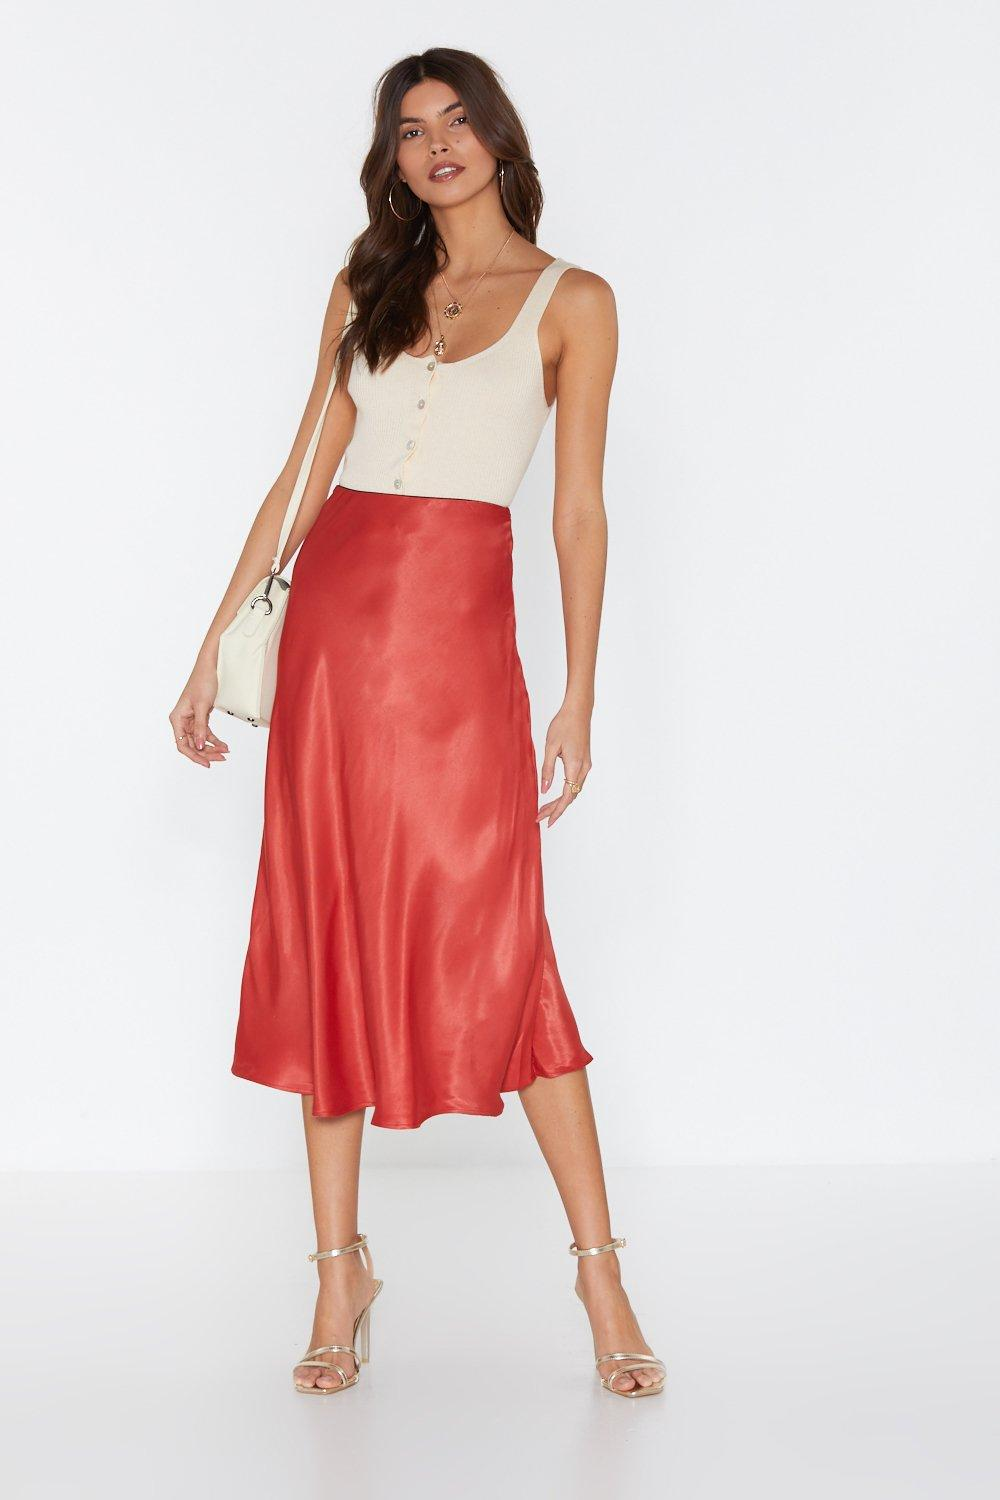 e28b39bb7b0 Womens Rust Sleek at the Knees Satin Midi Skirt. Hover to zoom